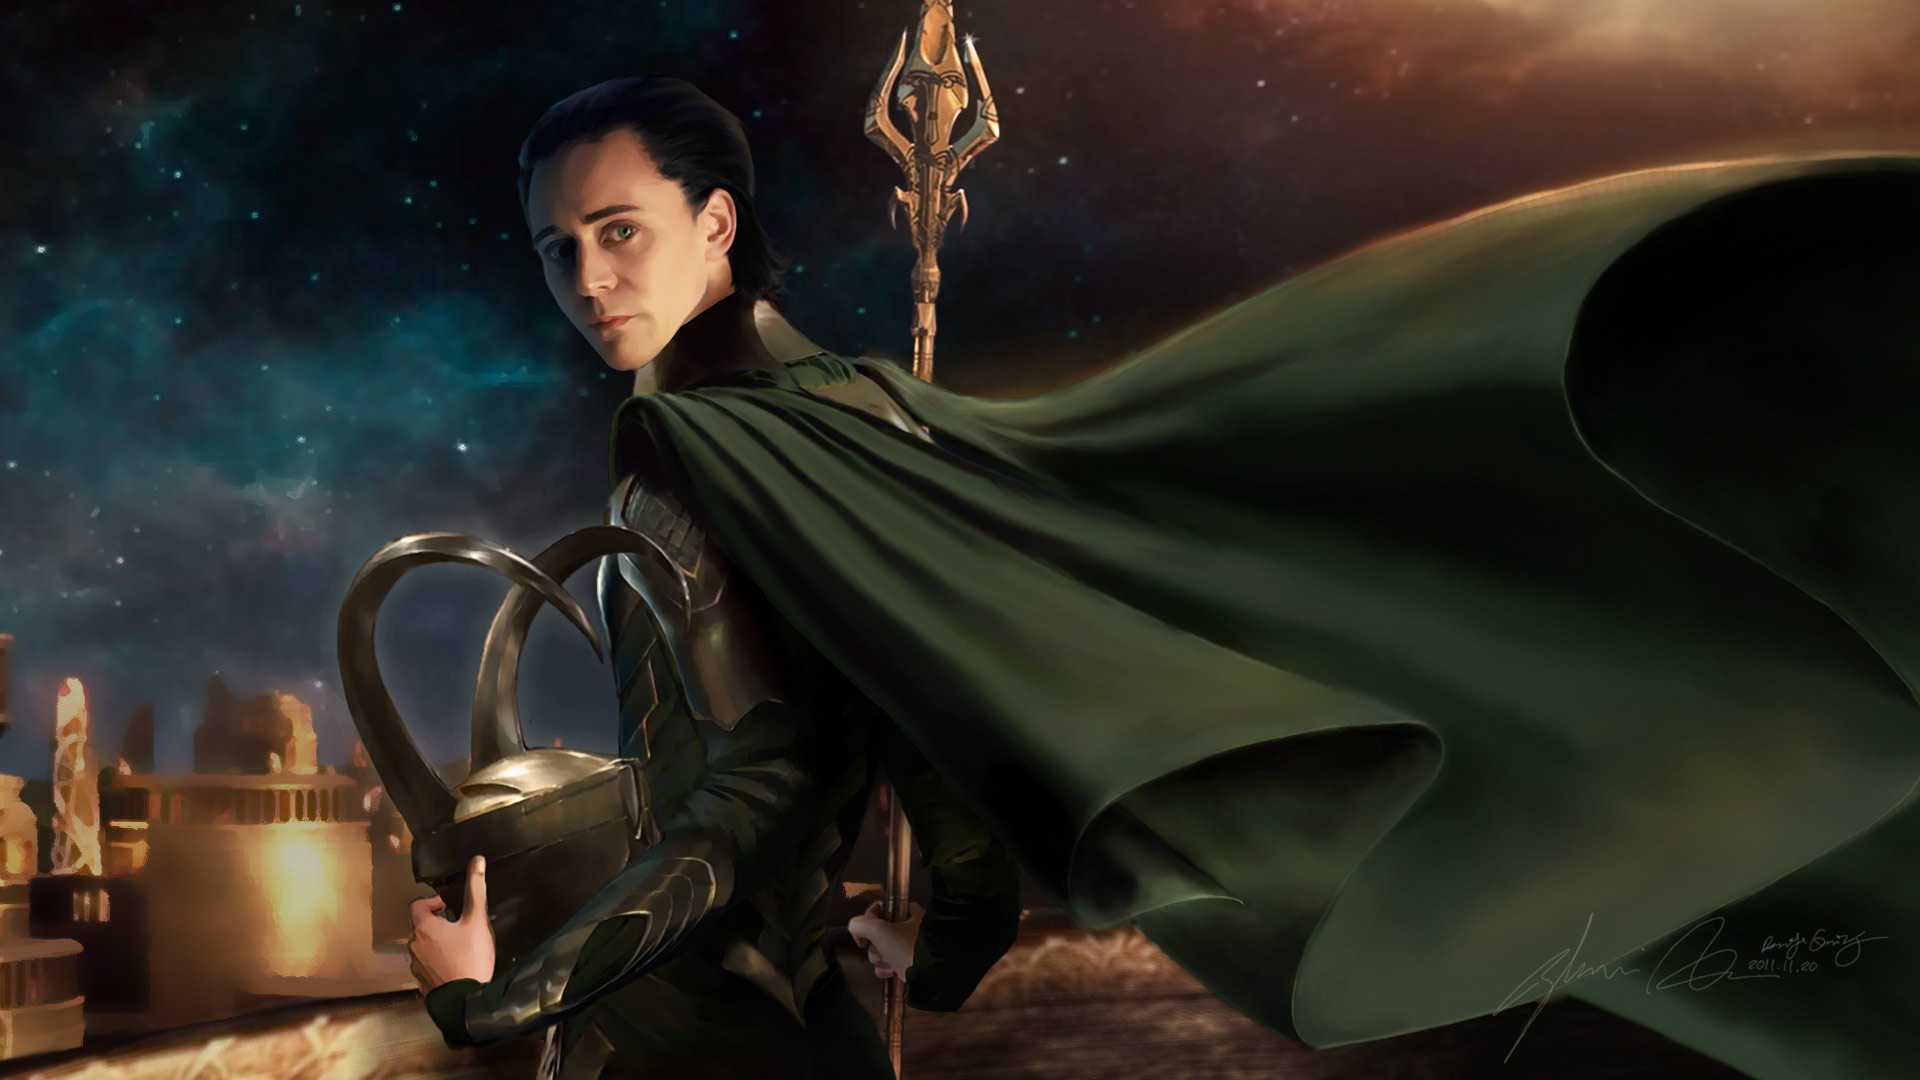 Loki -In My Darkest Hour by duyeqing